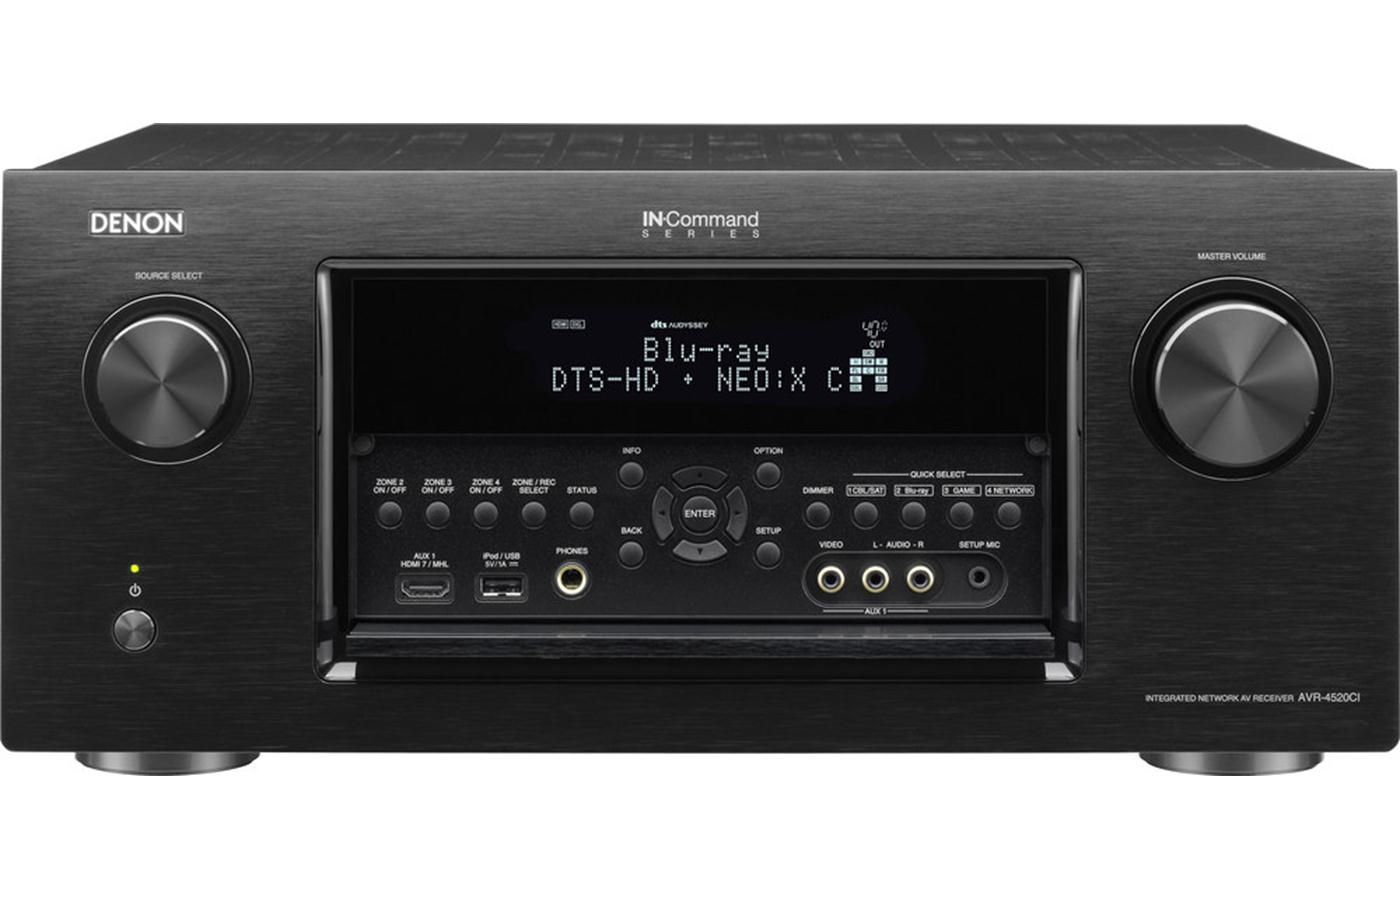 Denon AVR-4520CI Networking Home Theater AV Receiver with AirPlay